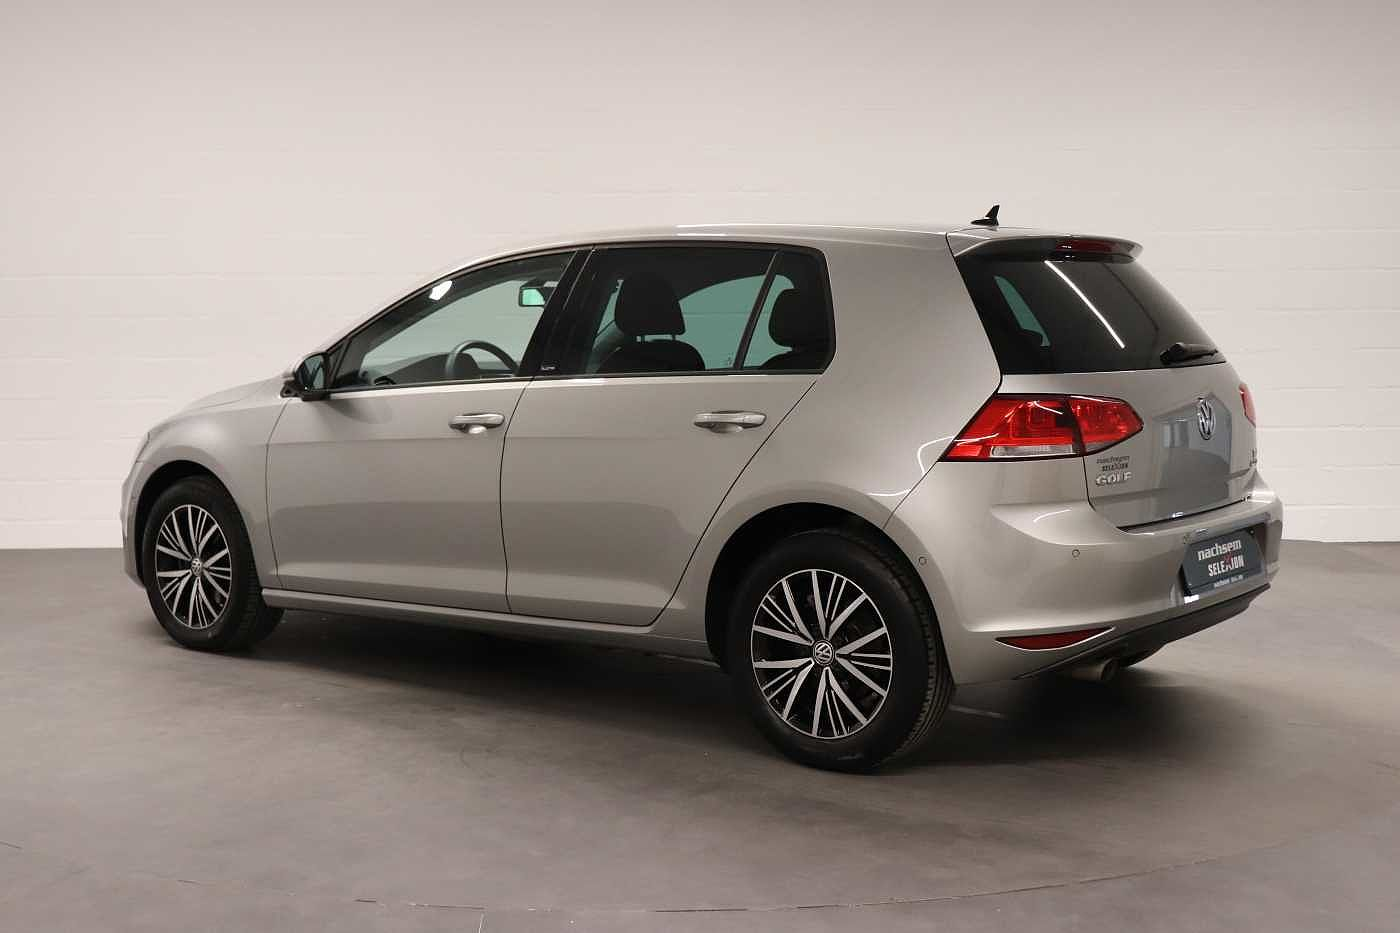 Volkswagen Golf 1.6TDI - photo 10